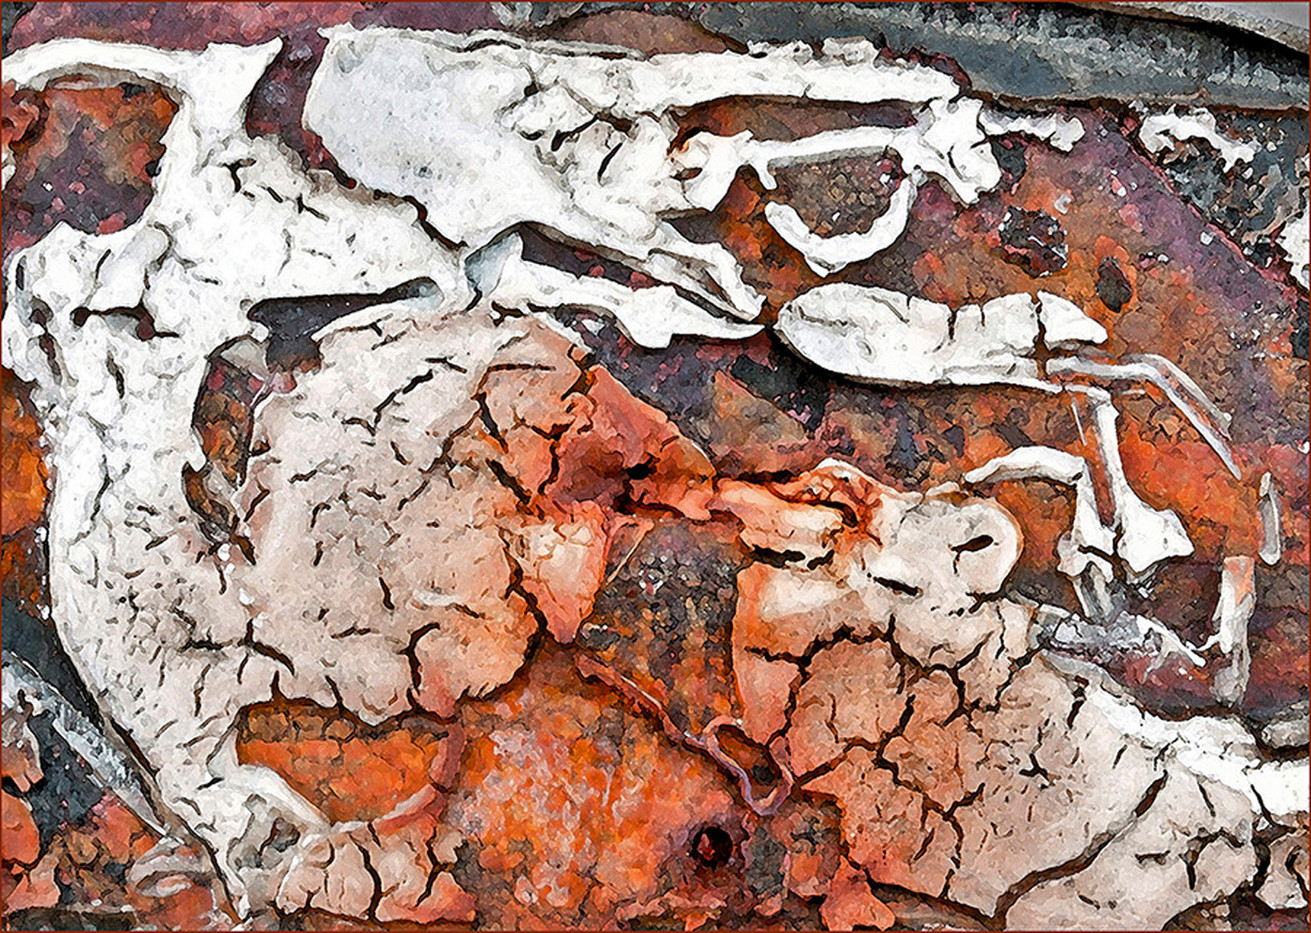 Group 1 18 SKELETAL IMPRESSIONS IN RUST by Mike Shave